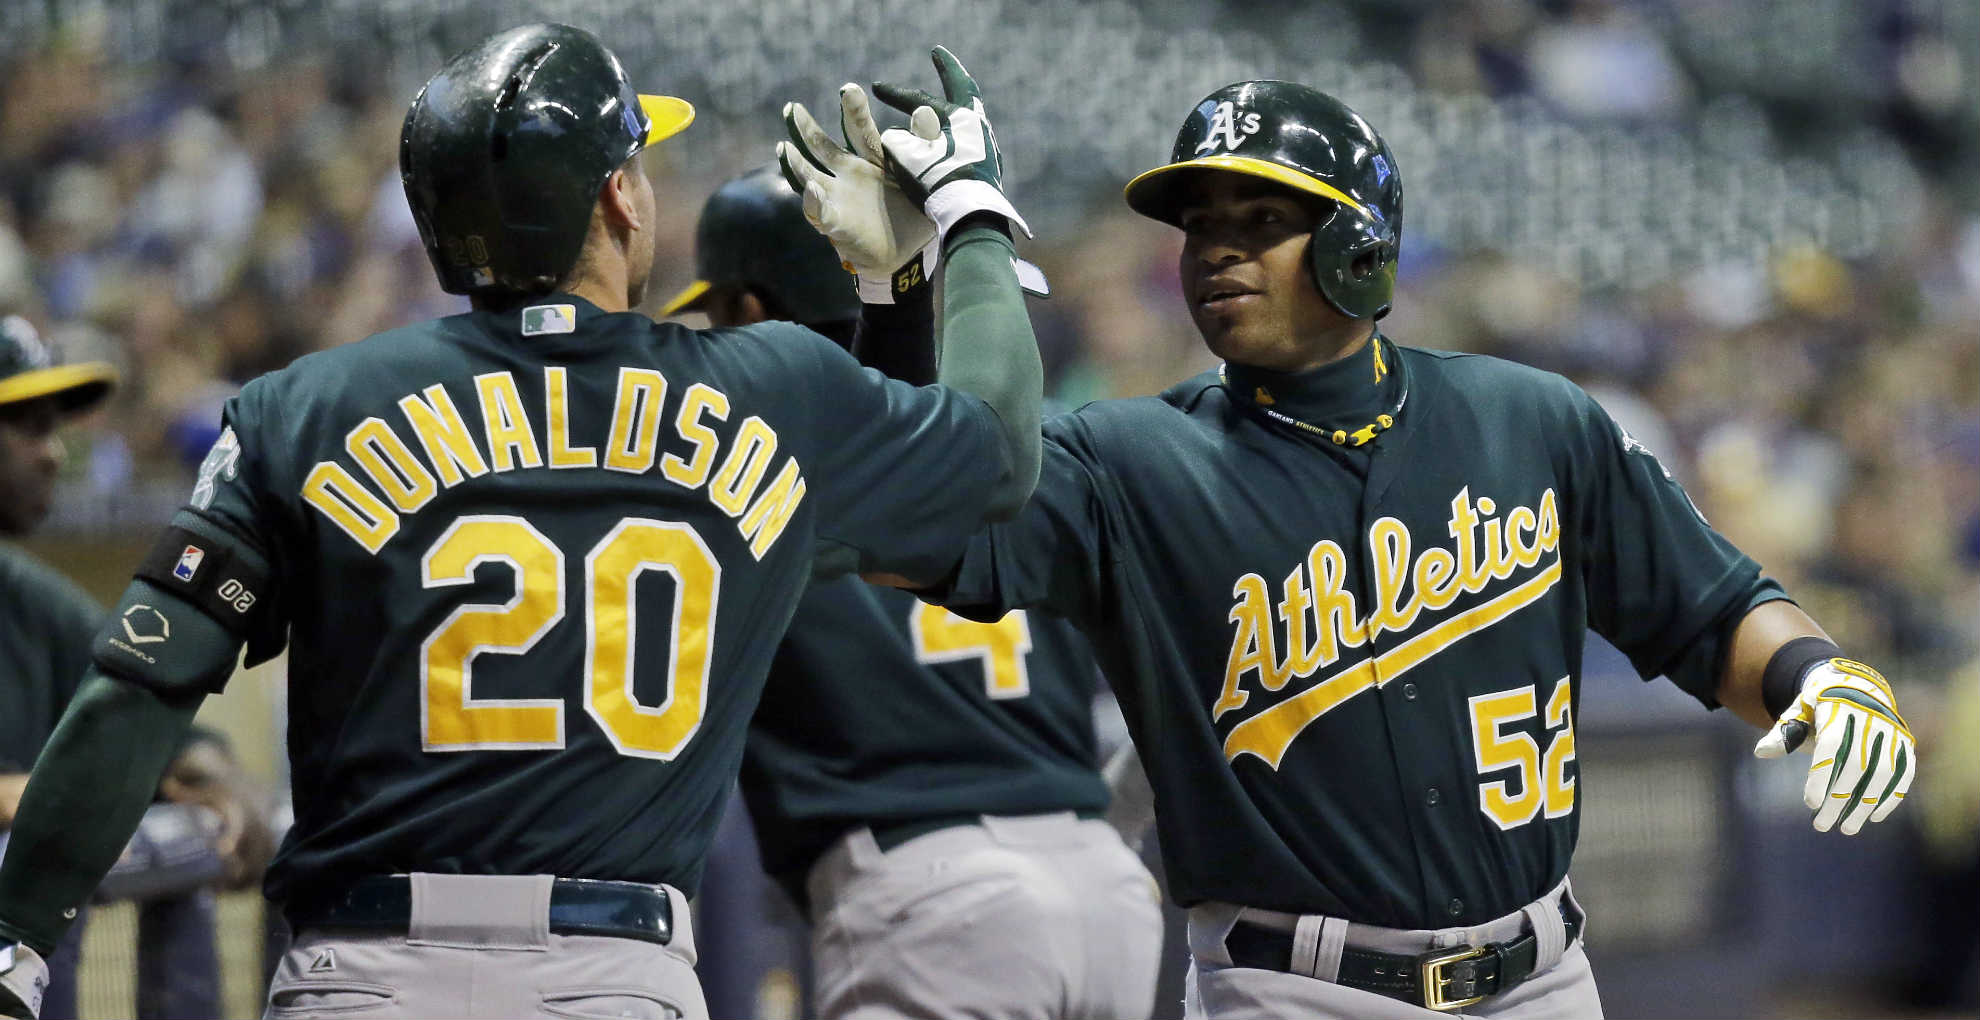 Fantasy baseball team report: Oakland Athletics